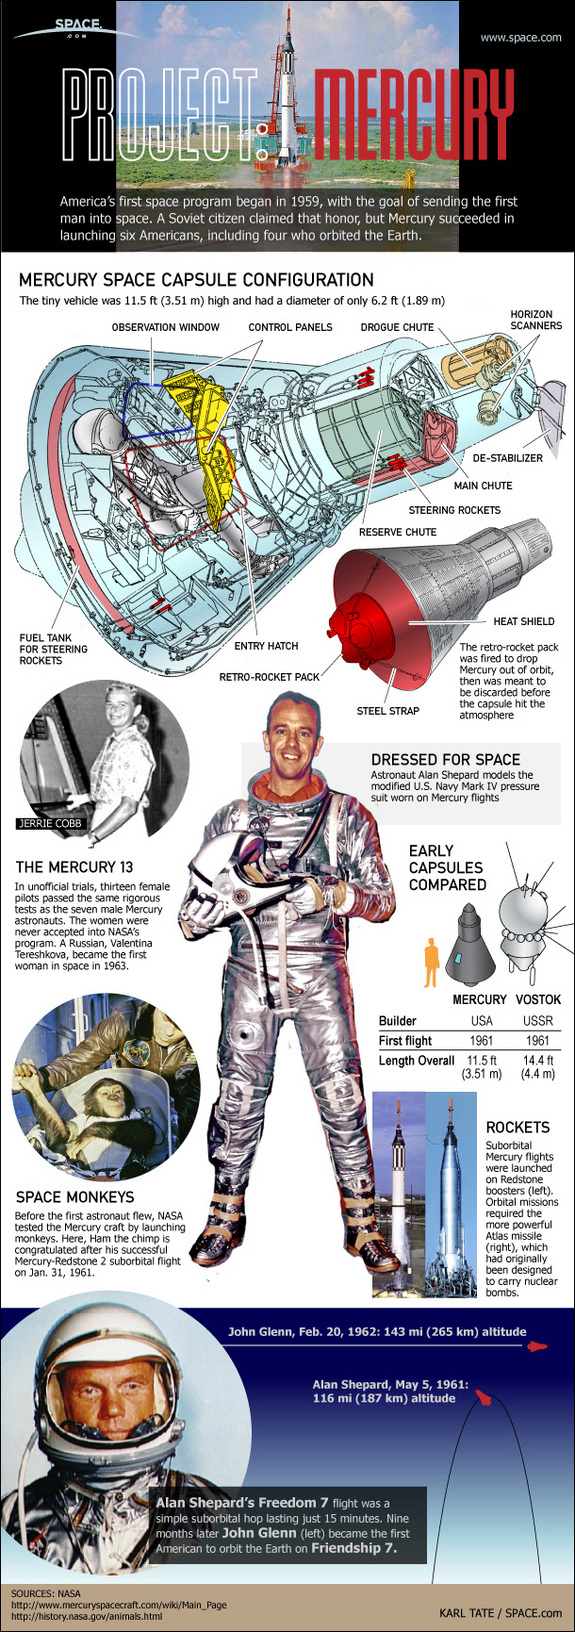 Project Mercury Infographic prepared by SPACE.com